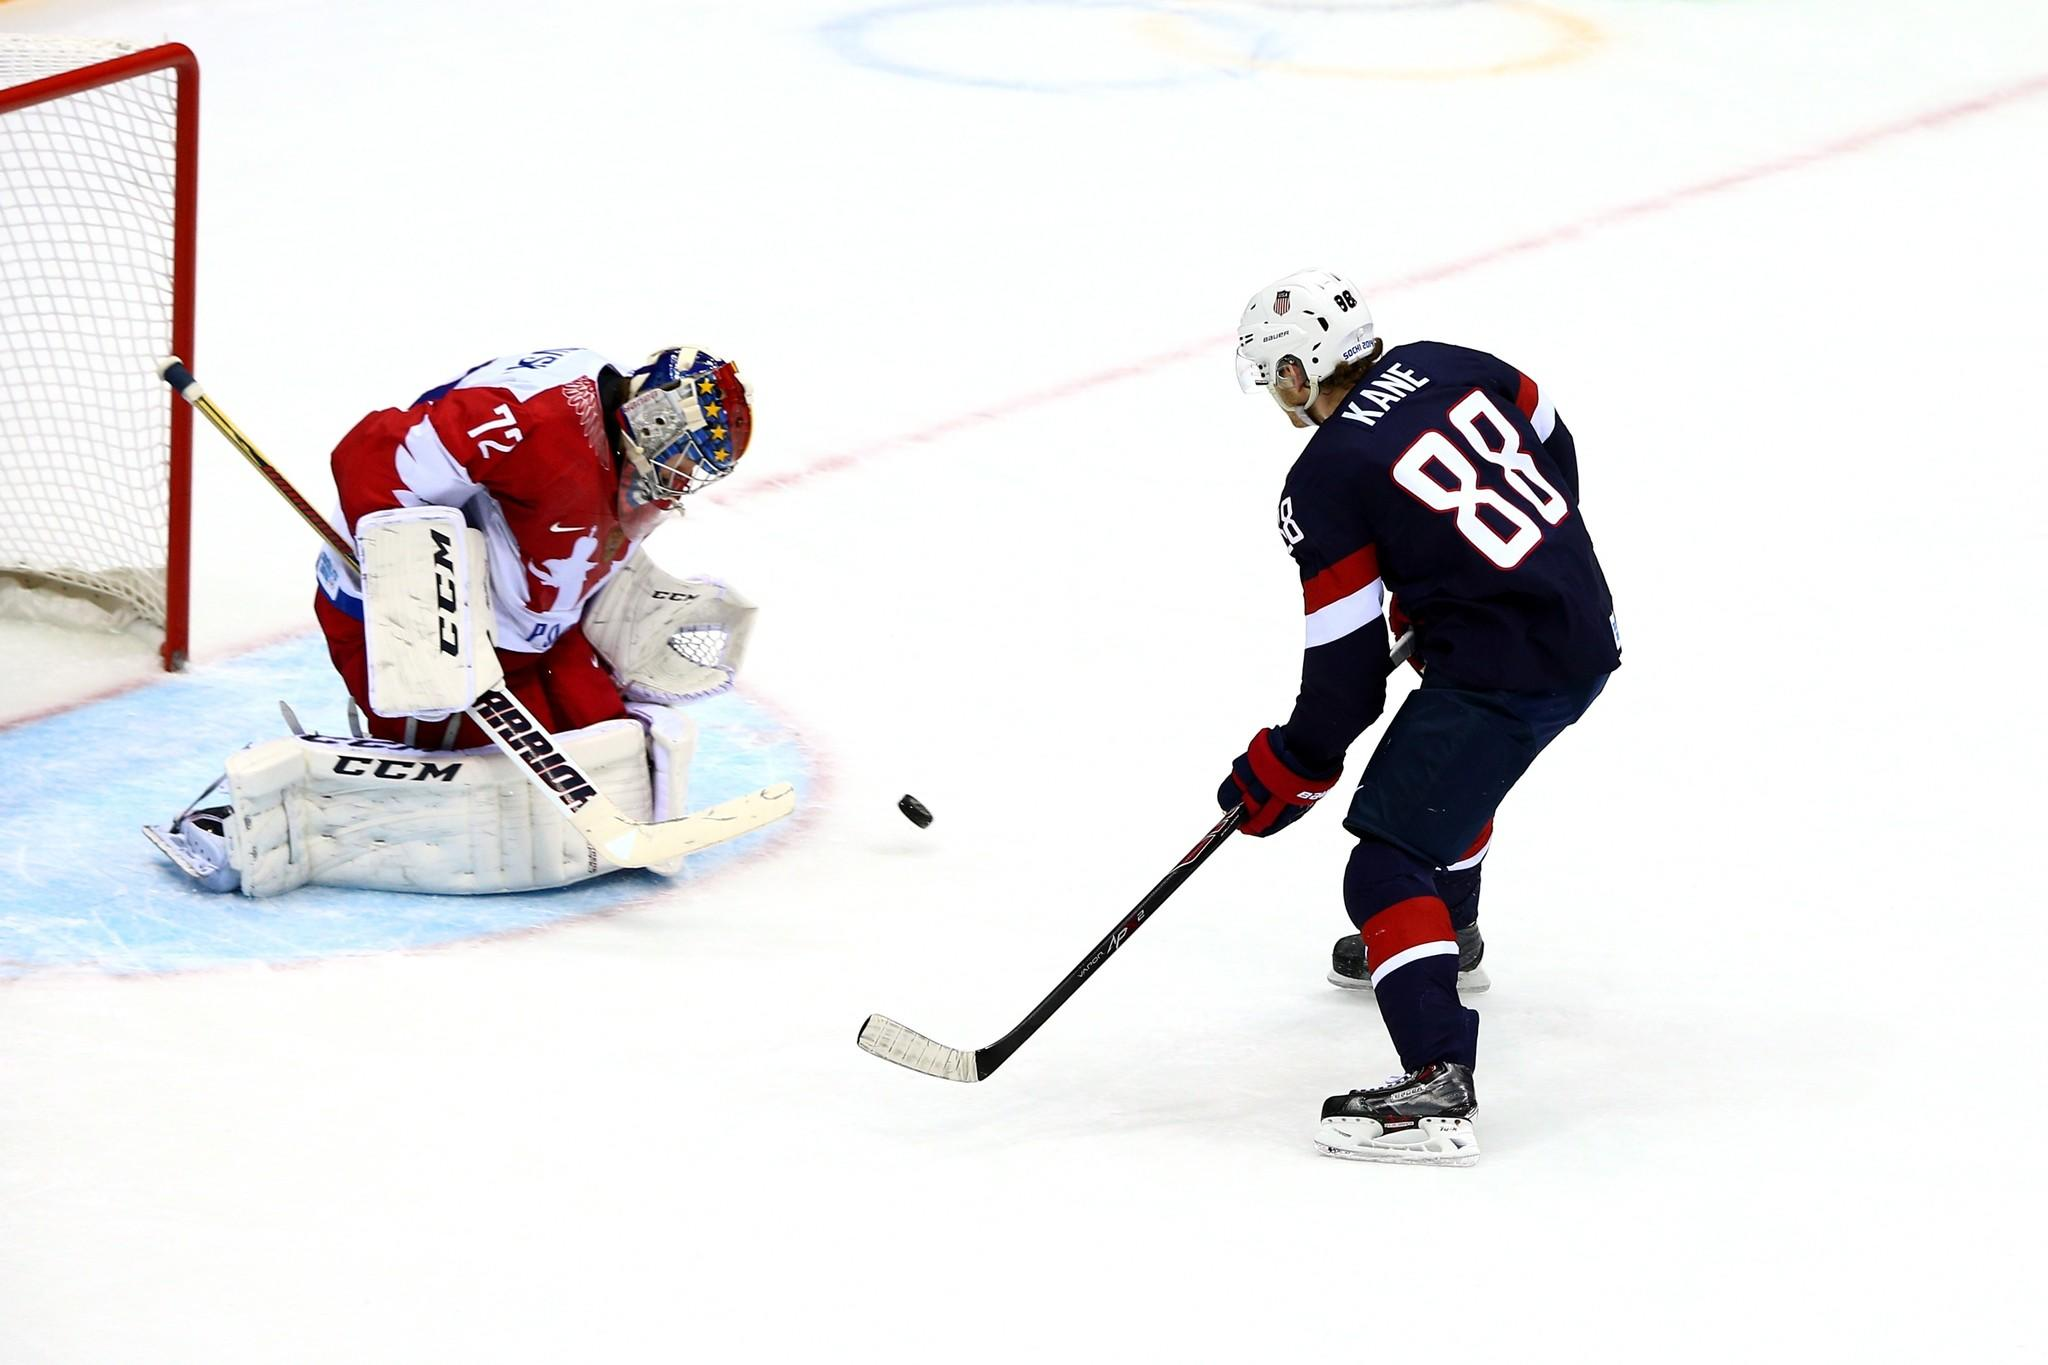 Patrick Kane (88) of the United States attempts a shot on goal against Sergei Bobrovski (72) of Russia during the Men's Ice Hockey Preliminary Round Group A game on day eight of the Sochi 2014 Winter Olympics at Bolshoy Ice Dome on February 15, 2014 in Sochi, Russia.